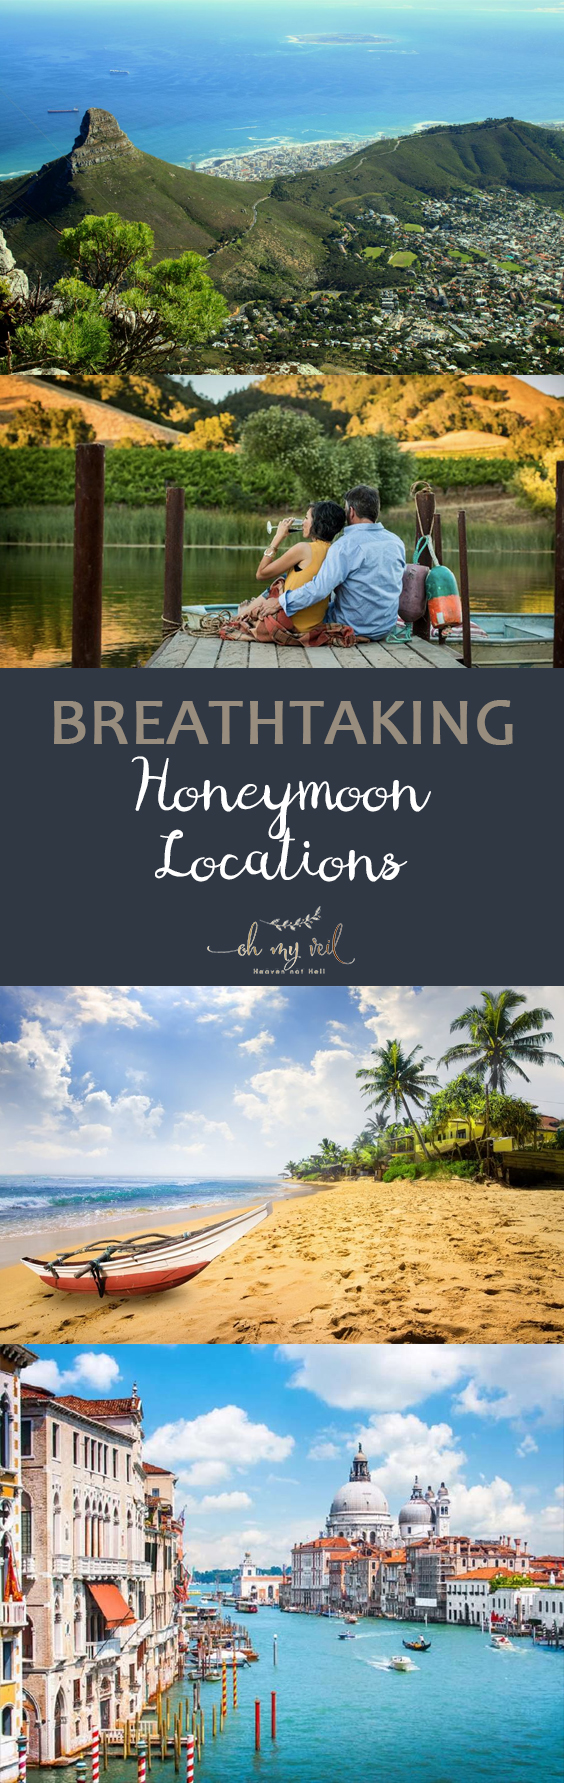 Breathtaking Honeymoon Locations  Honeymoon Locations, Fun Honeymoon Locations, How to Plan Your Honeymoon, Wedding, Honeymoon 101, Honeymoon Planning TIps and Tricks, Honeymoon Travel Tips, Popular Pin